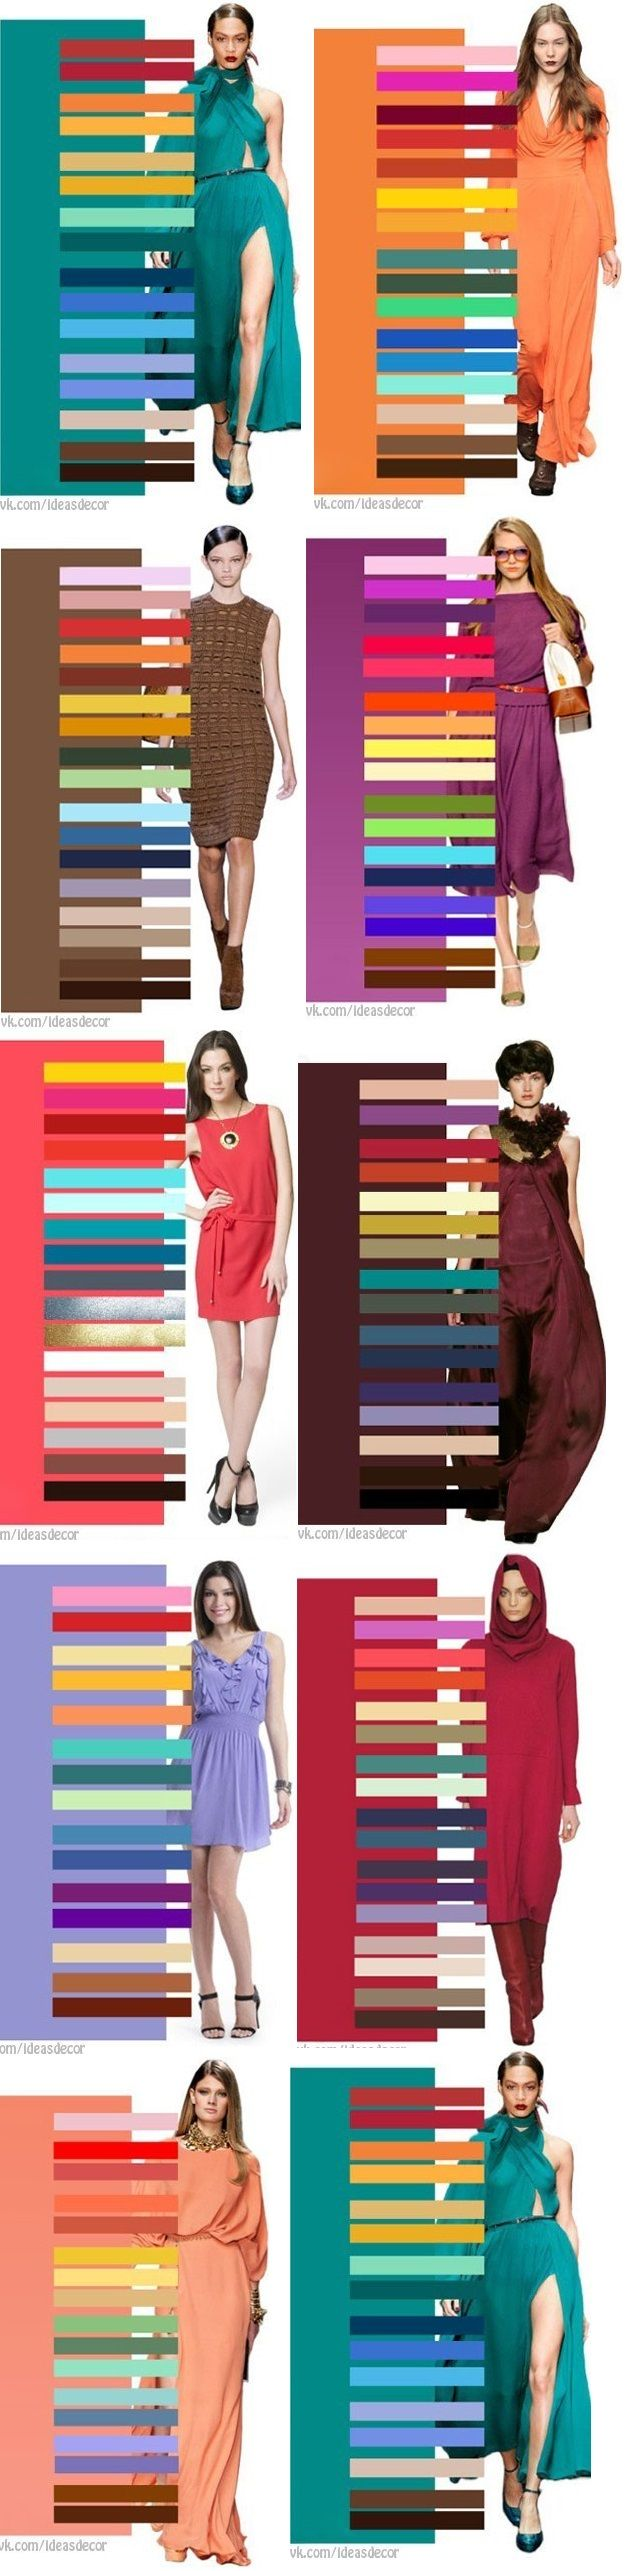 Matching color combinations clothes